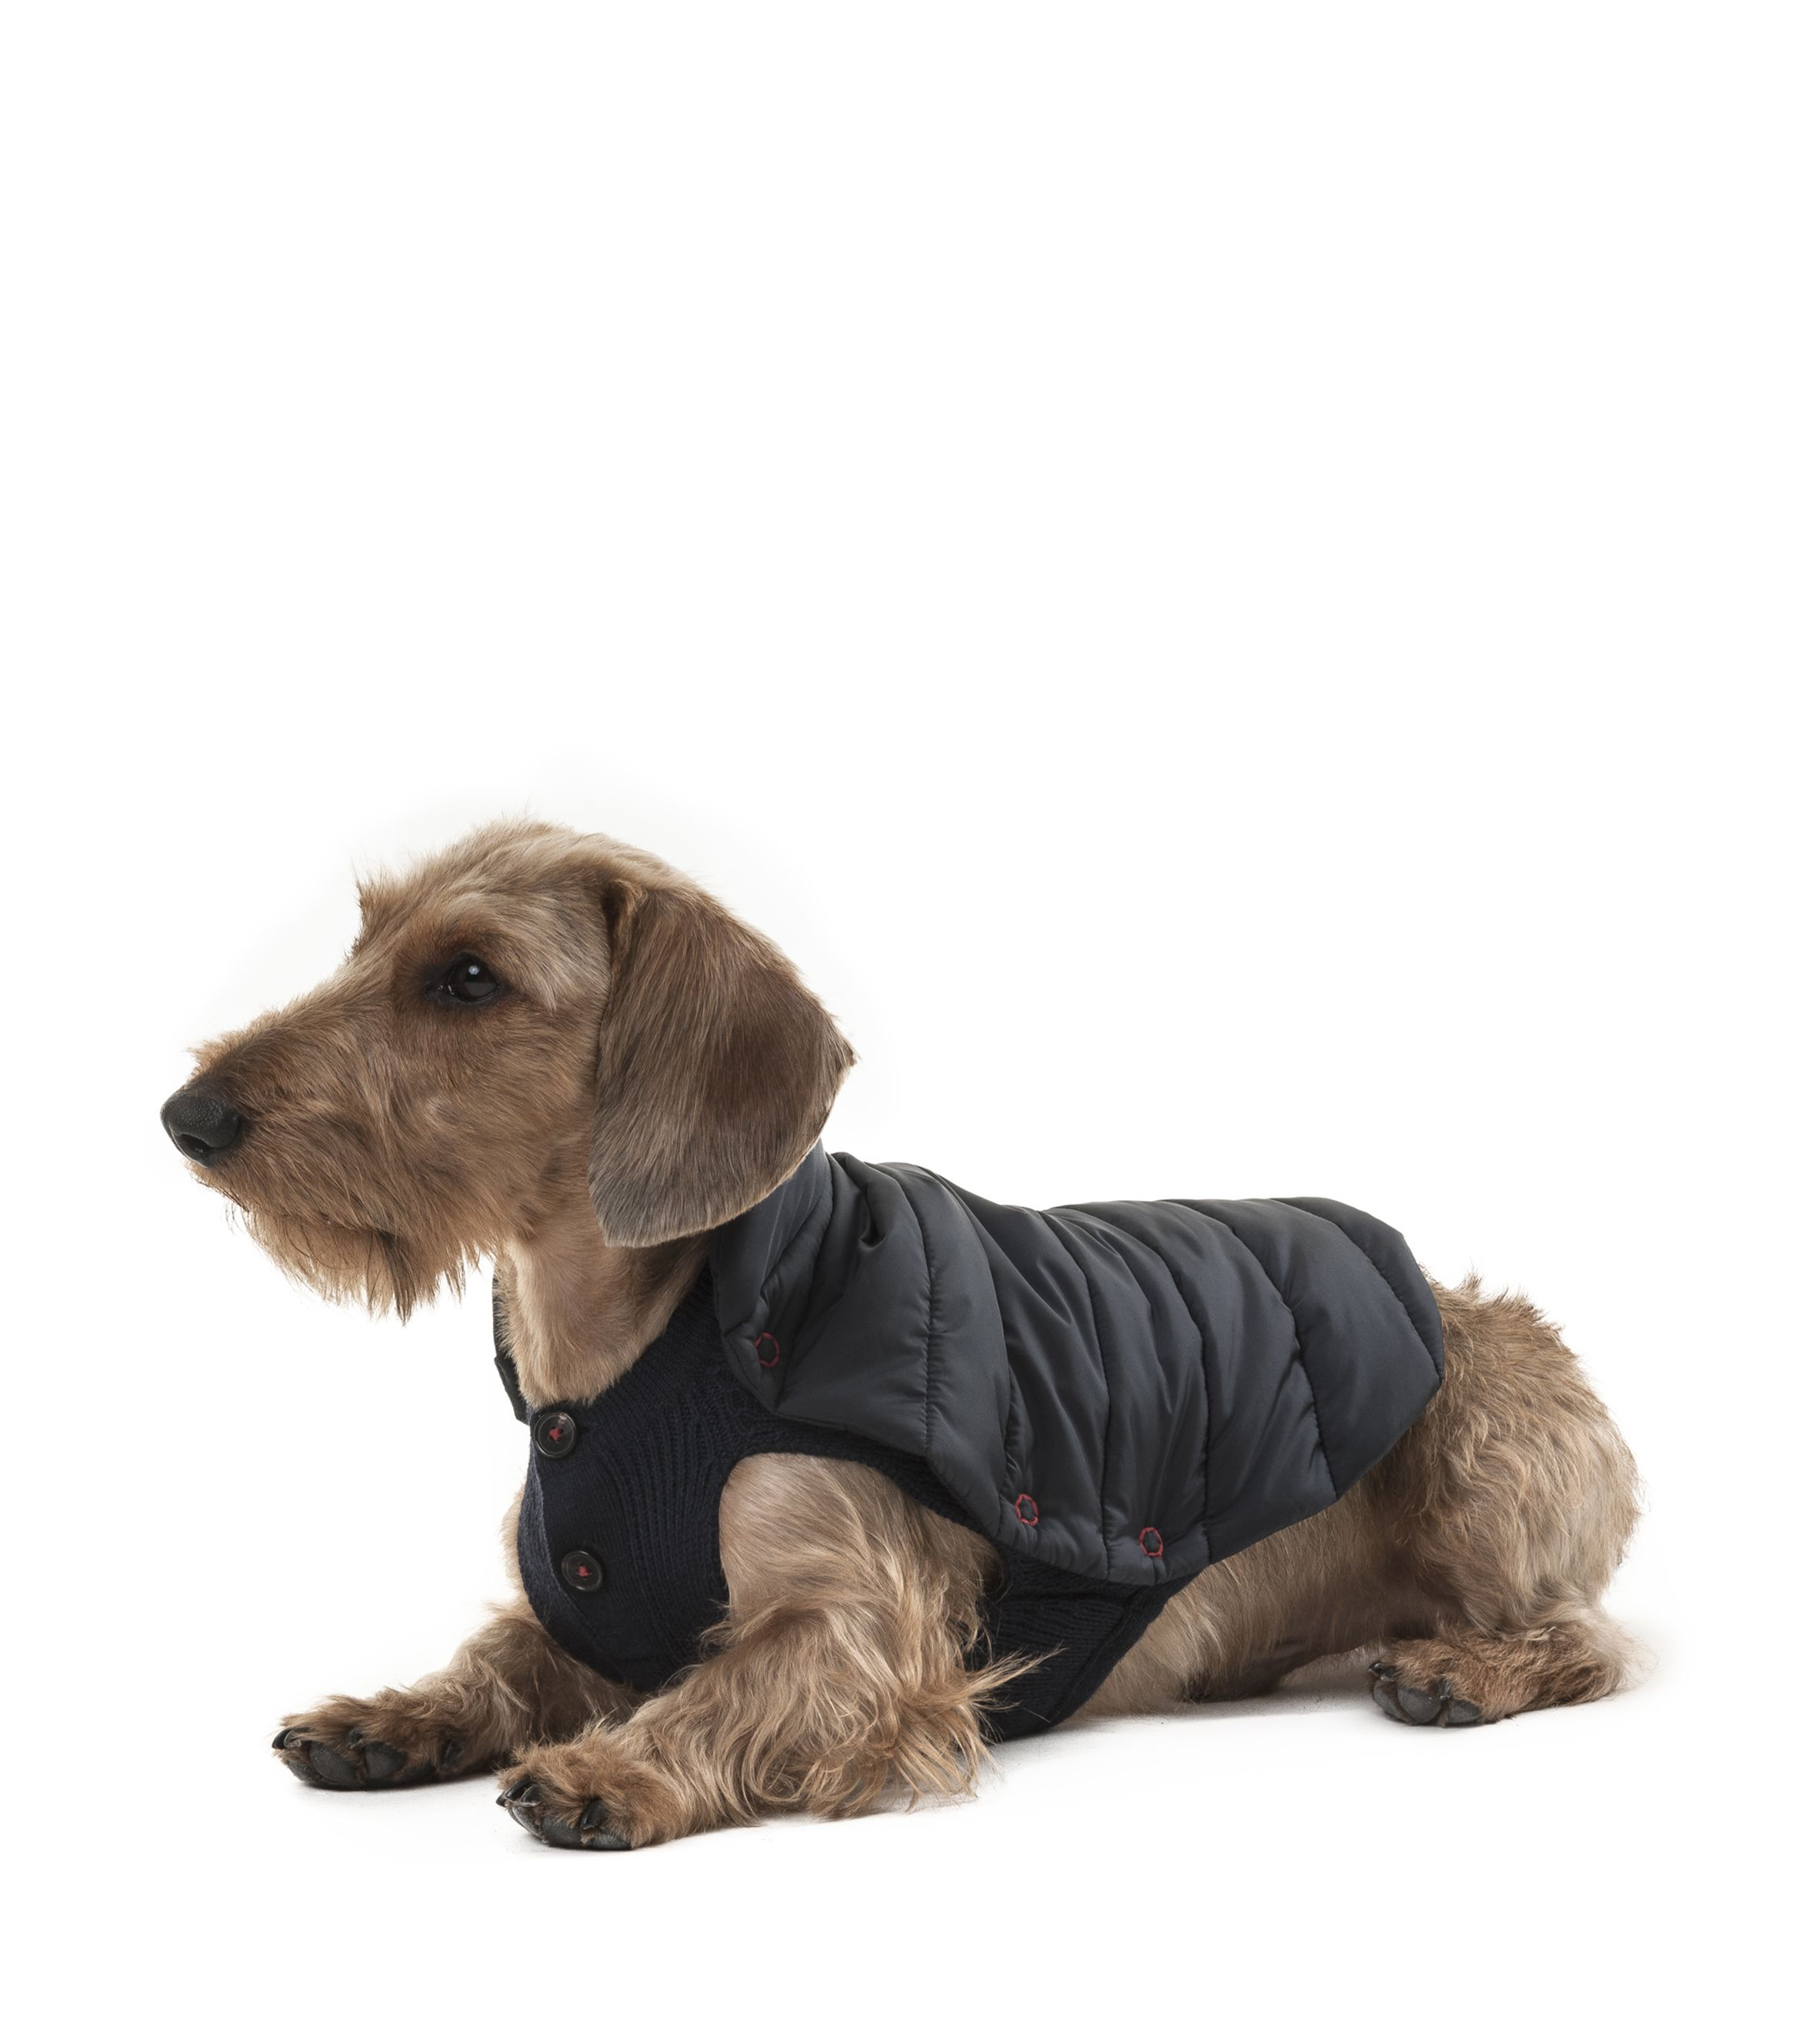 POLDO DOG COUTURE - CORTINA Coat with removible top in matt nylon and wool sweater. Water-repellent treatment. #poldodogcouture #poldo #dog #couture #coat #sweater #dachshund #teckel #dogoutfitters